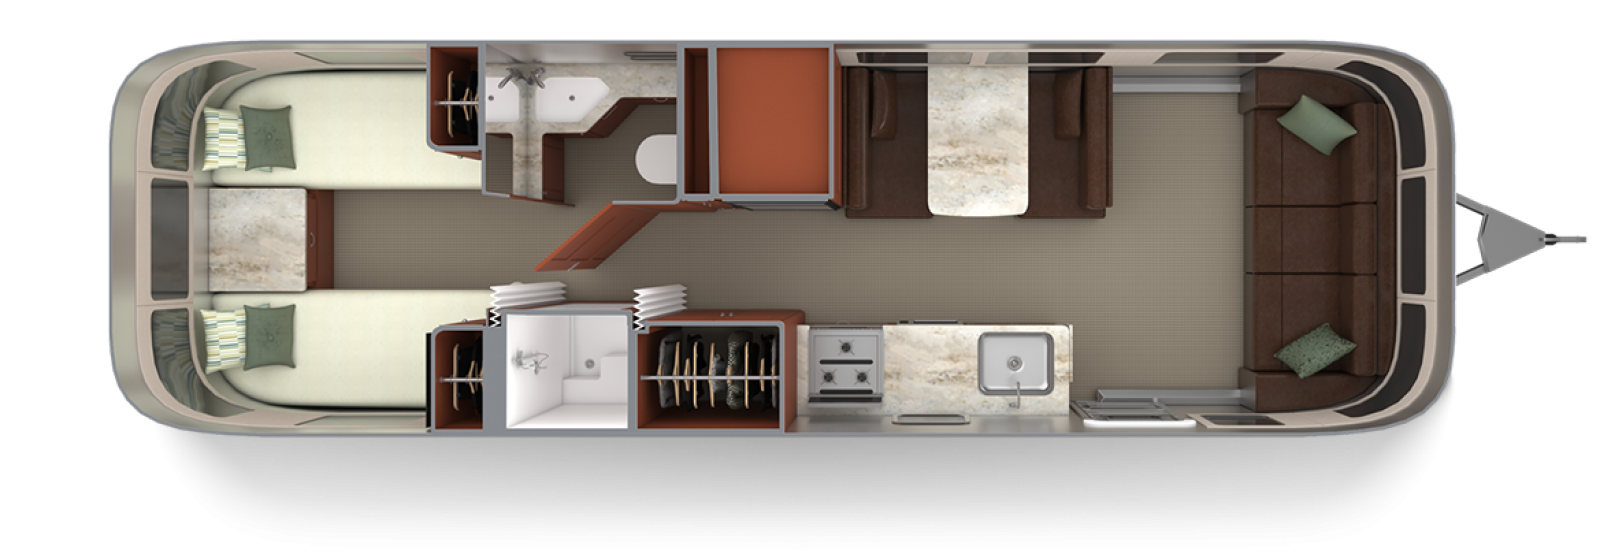 Airstream-Classic-30RB-Twin-Mocha-Cherry-with-Chestnut-Floor-Plan